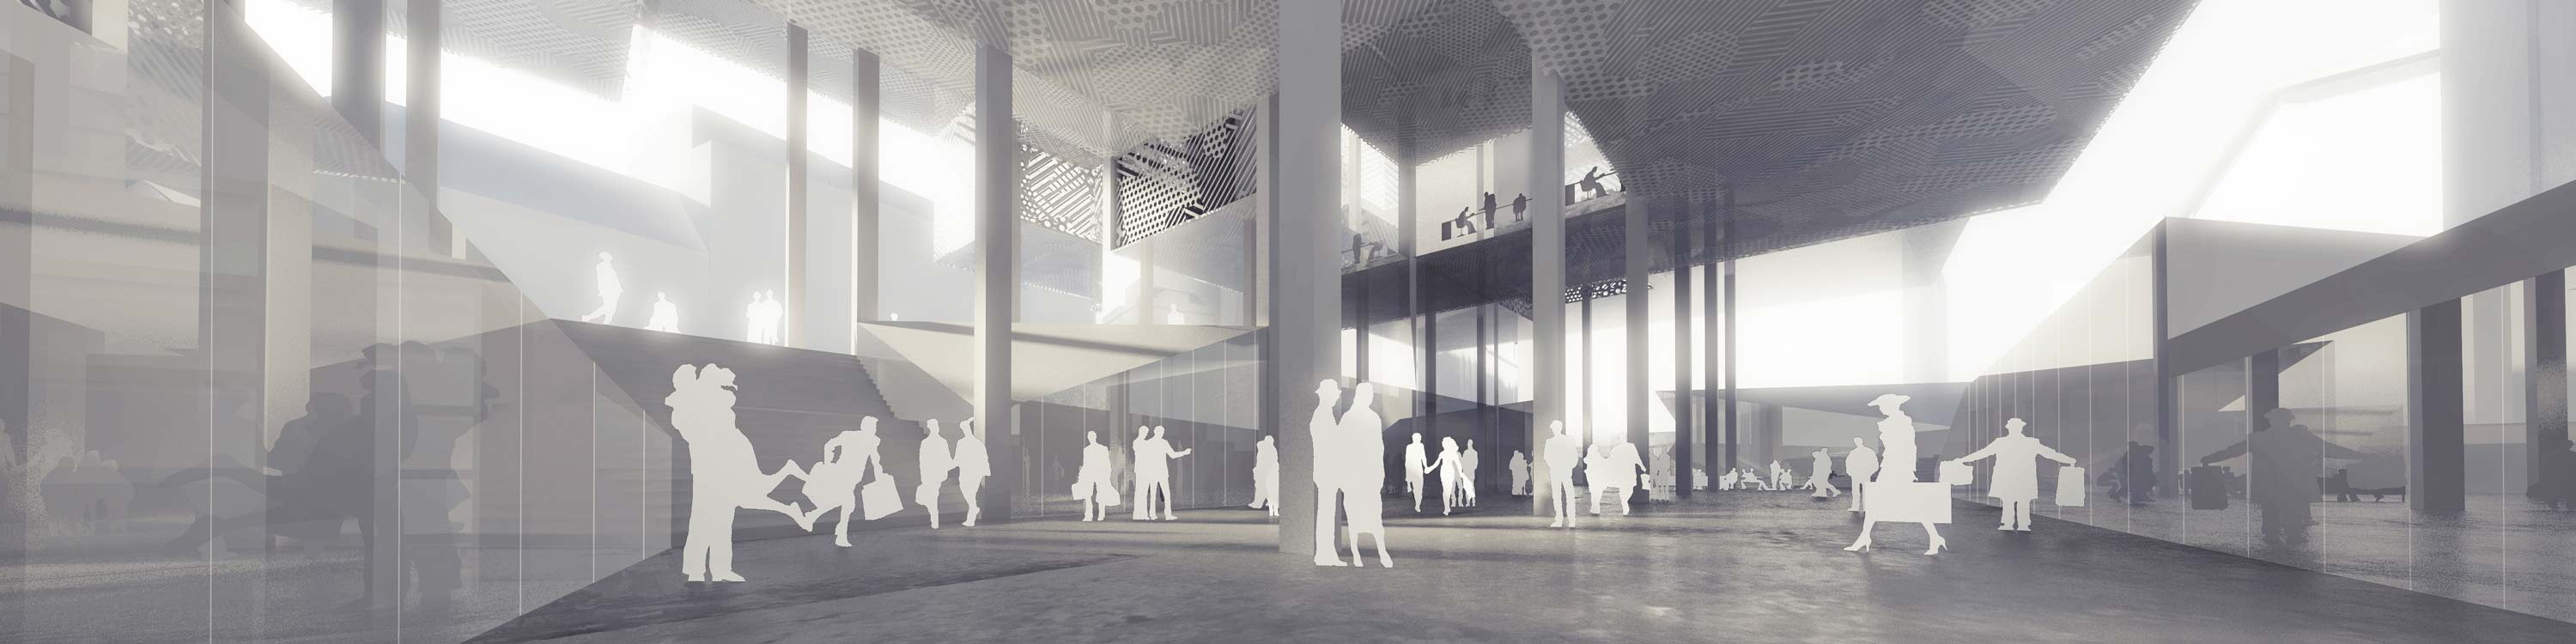 ppag_rathaustrasse_render_inside_view2